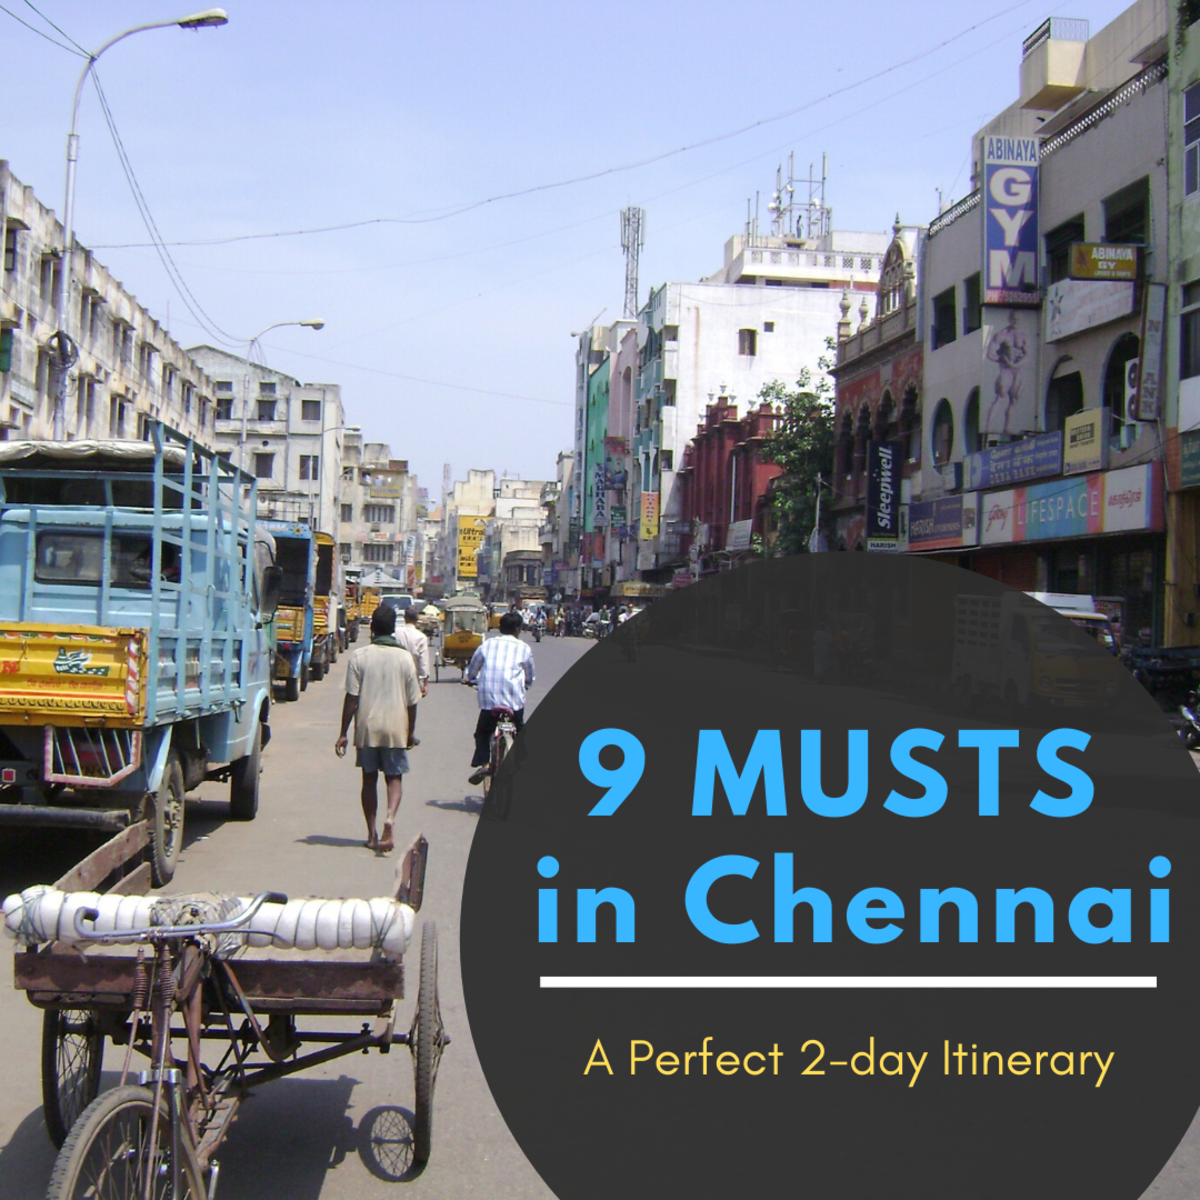 How to Spend a Weekend in Chennai (9 Things to See and Do)